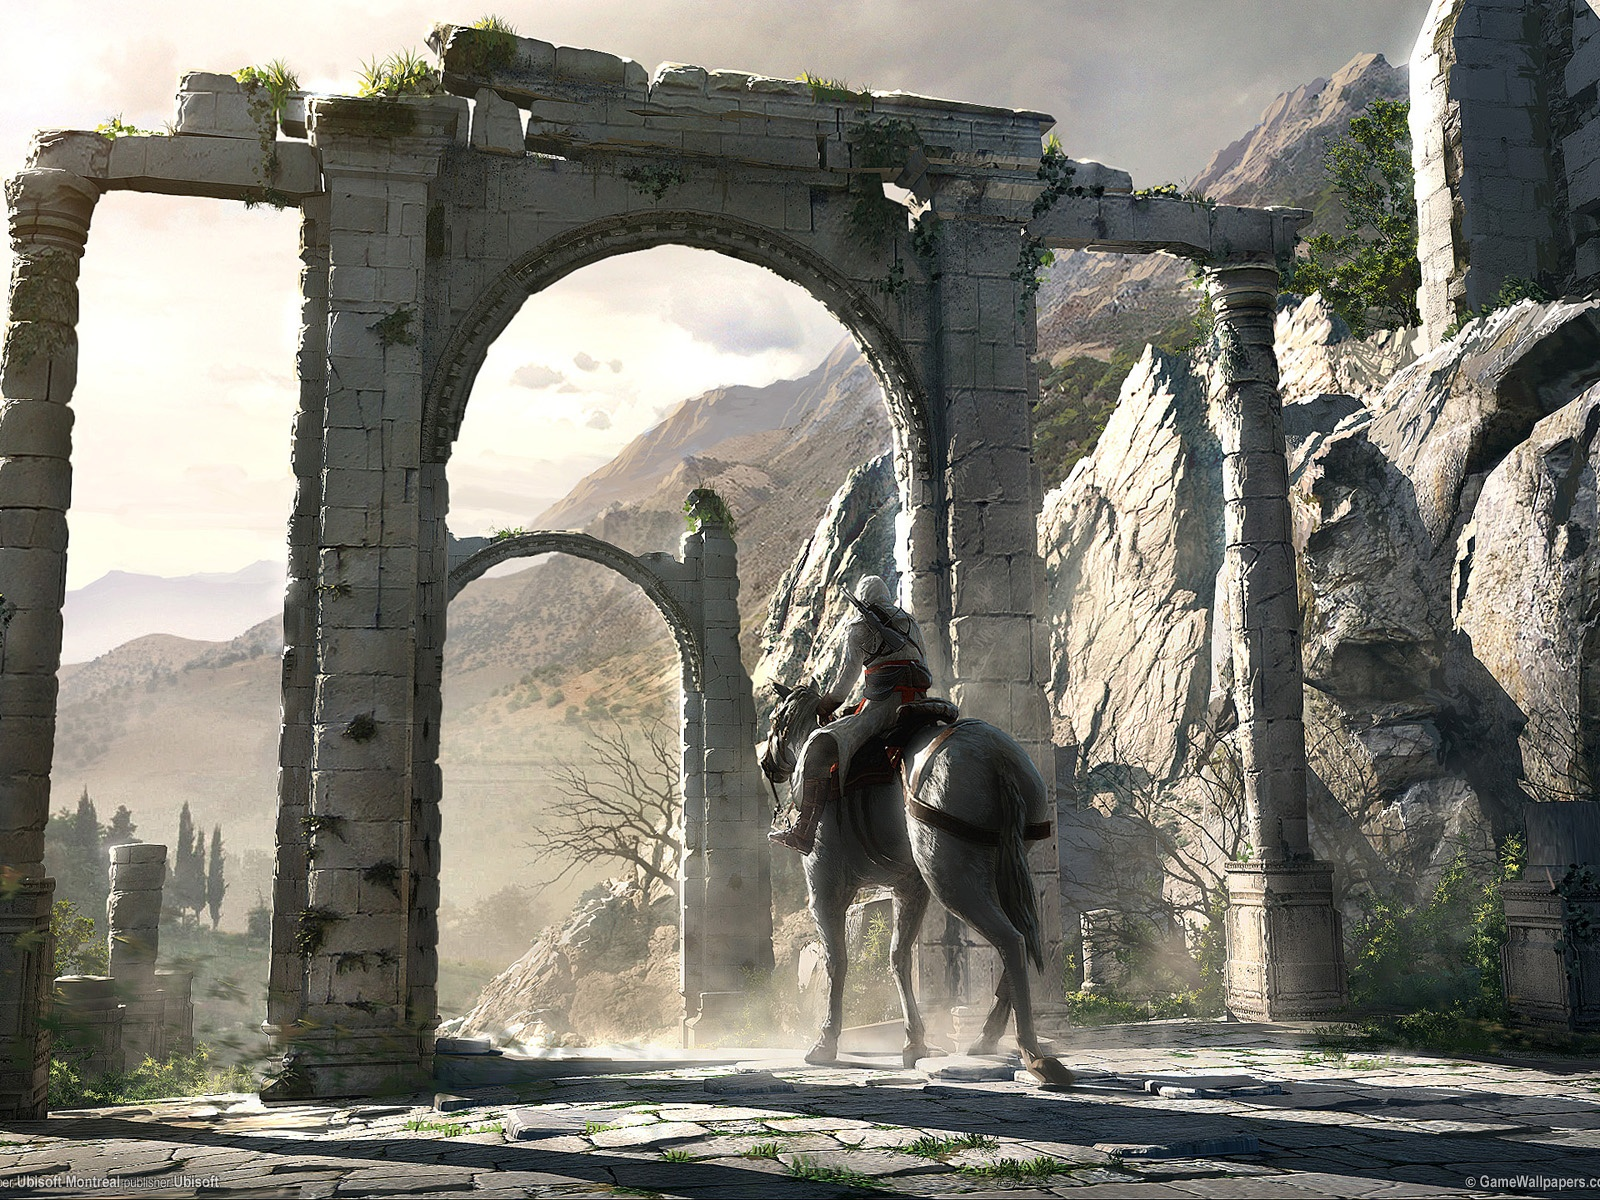 click to free download the wallpaper--Free Pics of Games, Assassin's Creed, a Man Alone on the Horse, Arches Stone, Shall Strike a Deep Impression 1600X1200 free wallpaper download